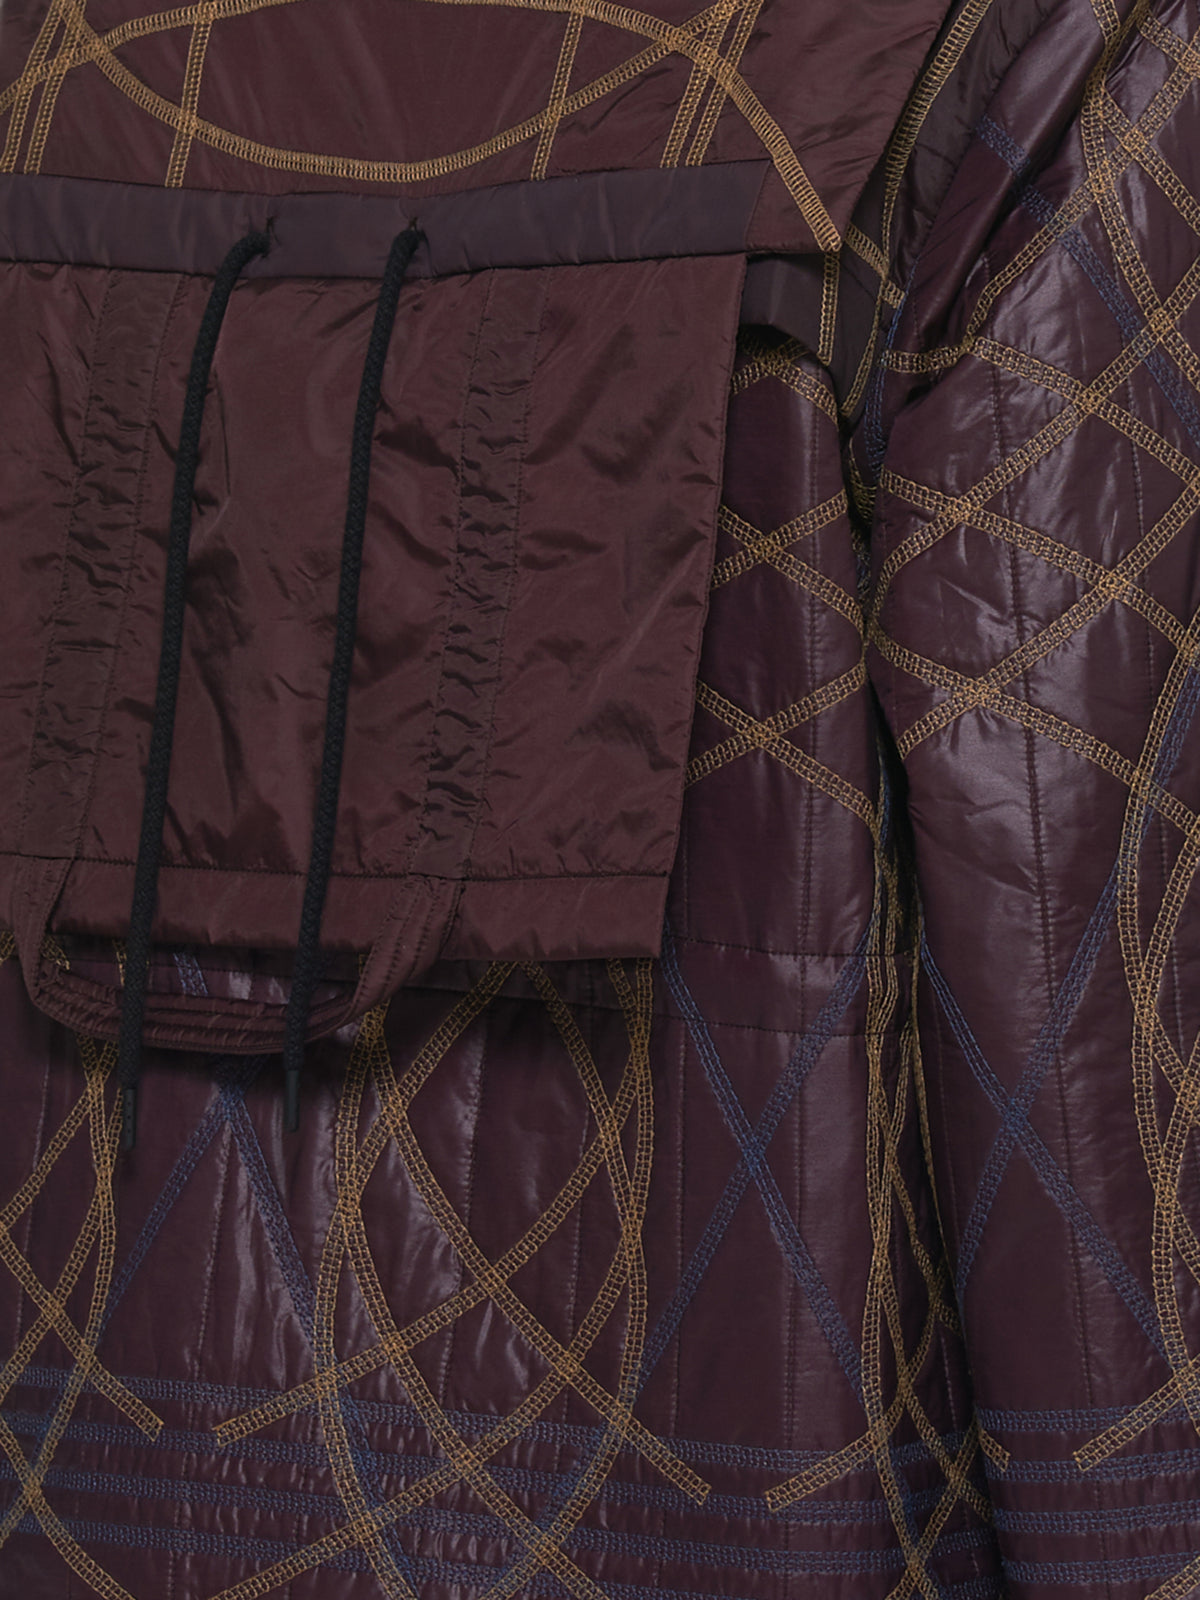 Quilted Embroidery Swirl Jacket (MWOJKT13-BURGUNDY)